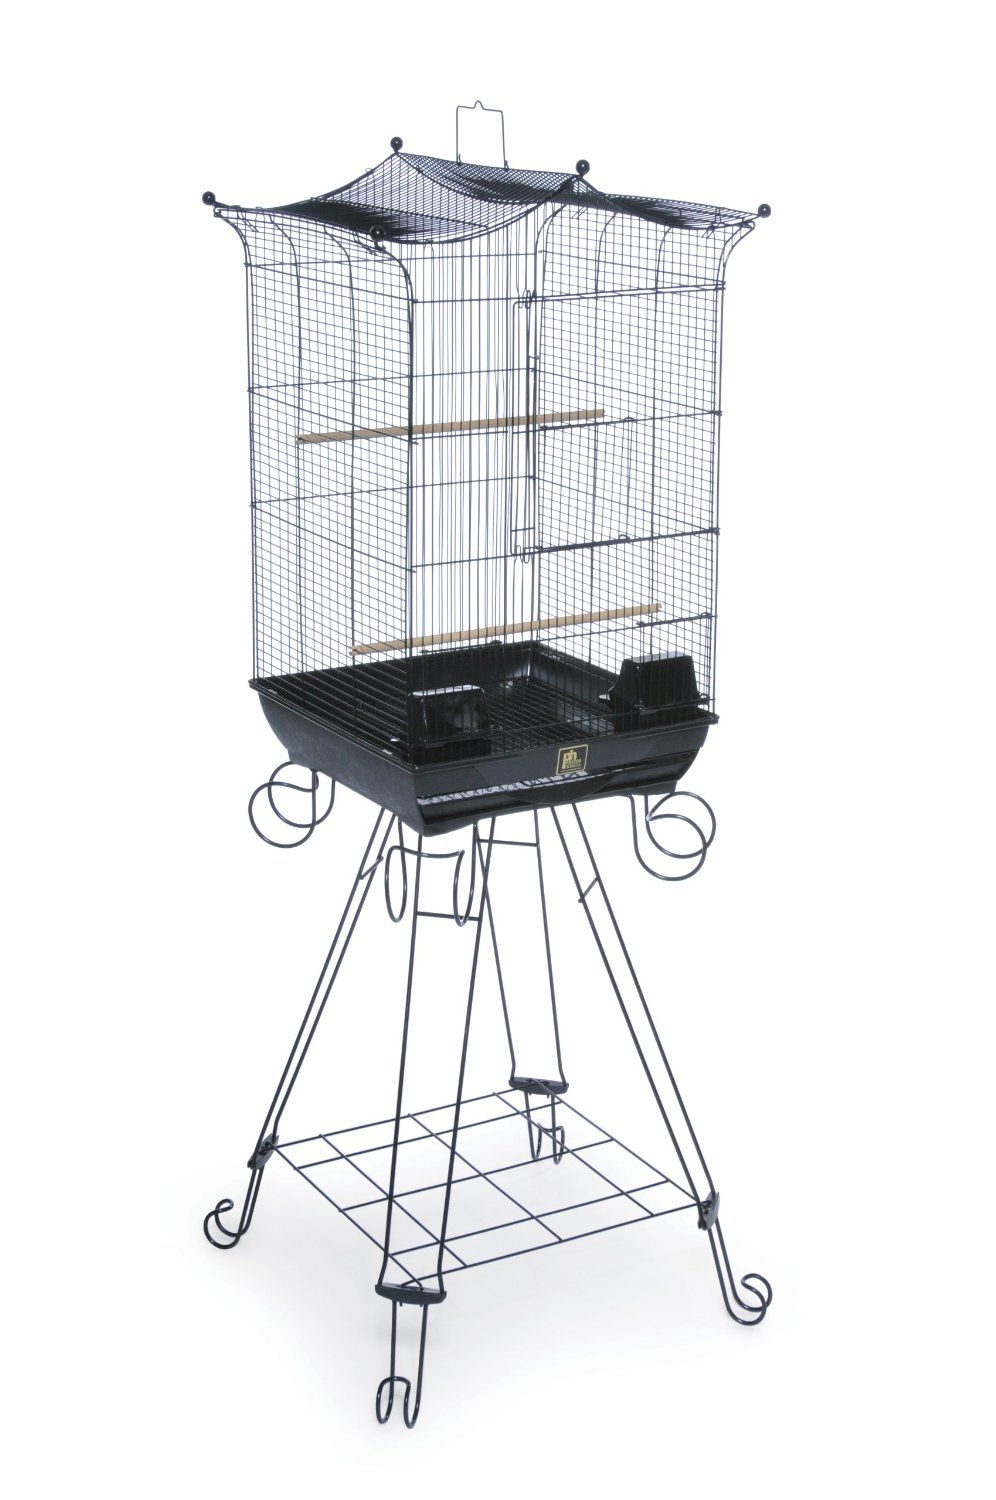 $57.13. The Bird Penthouse Suites Round Roof Aviary with Stand is a ...